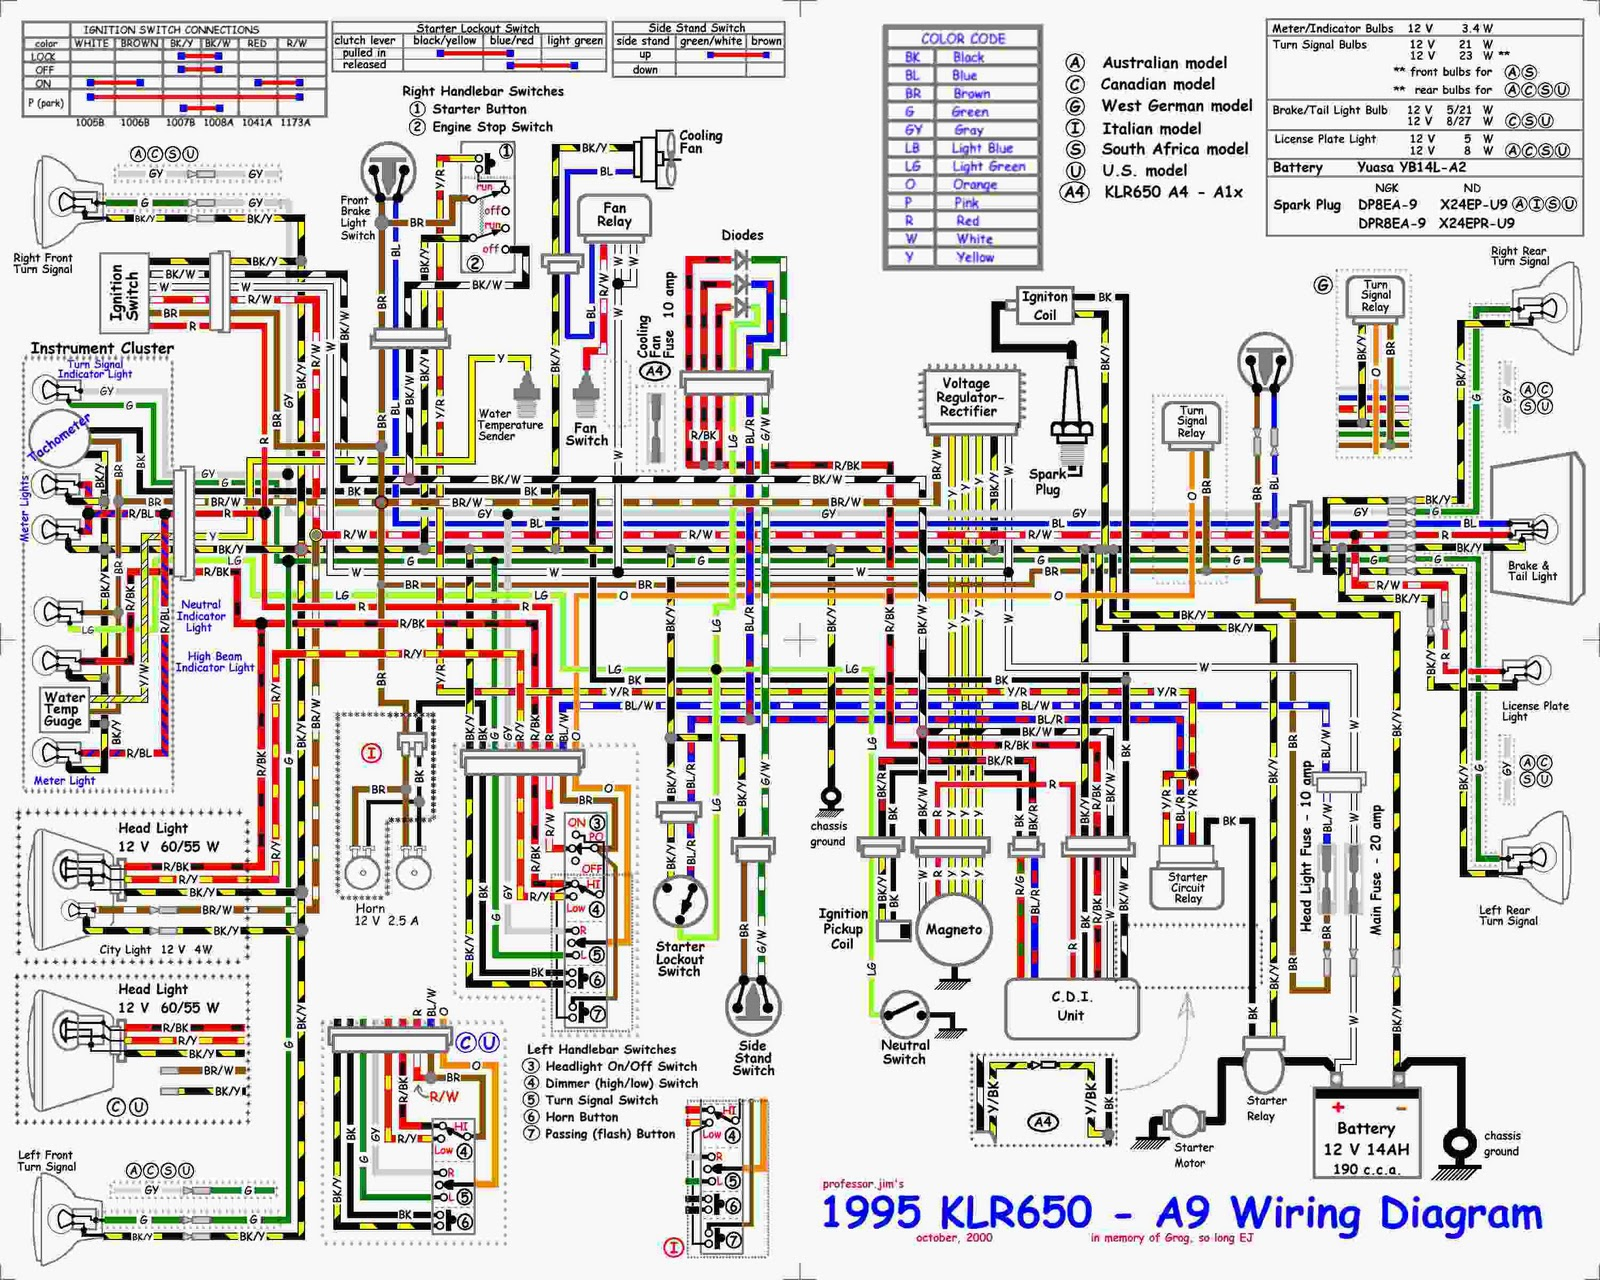 1995 kawasaki klr650 wiring diagram all about wiring diagrams. Black Bedroom Furniture Sets. Home Design Ideas